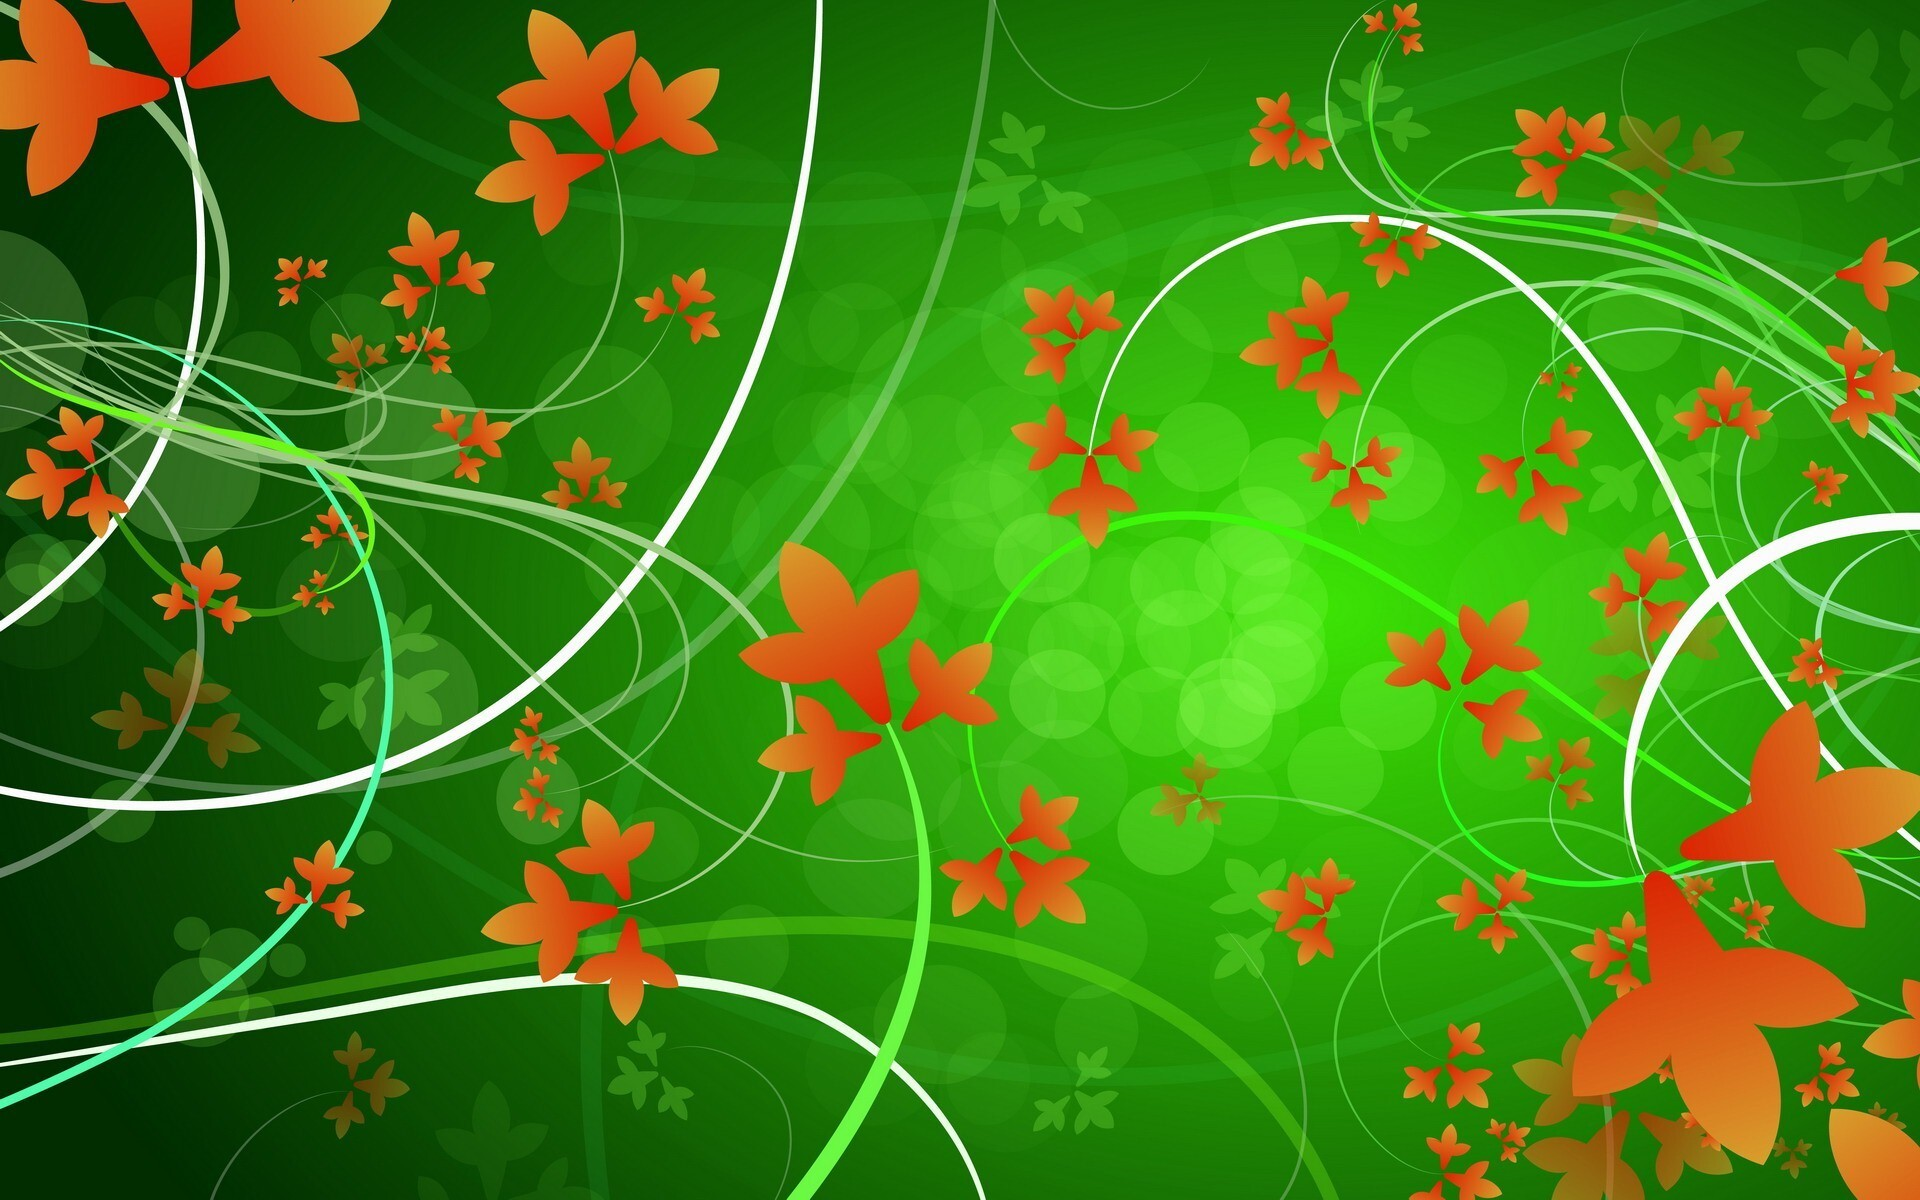 Green Background With Orange Leaves Designs